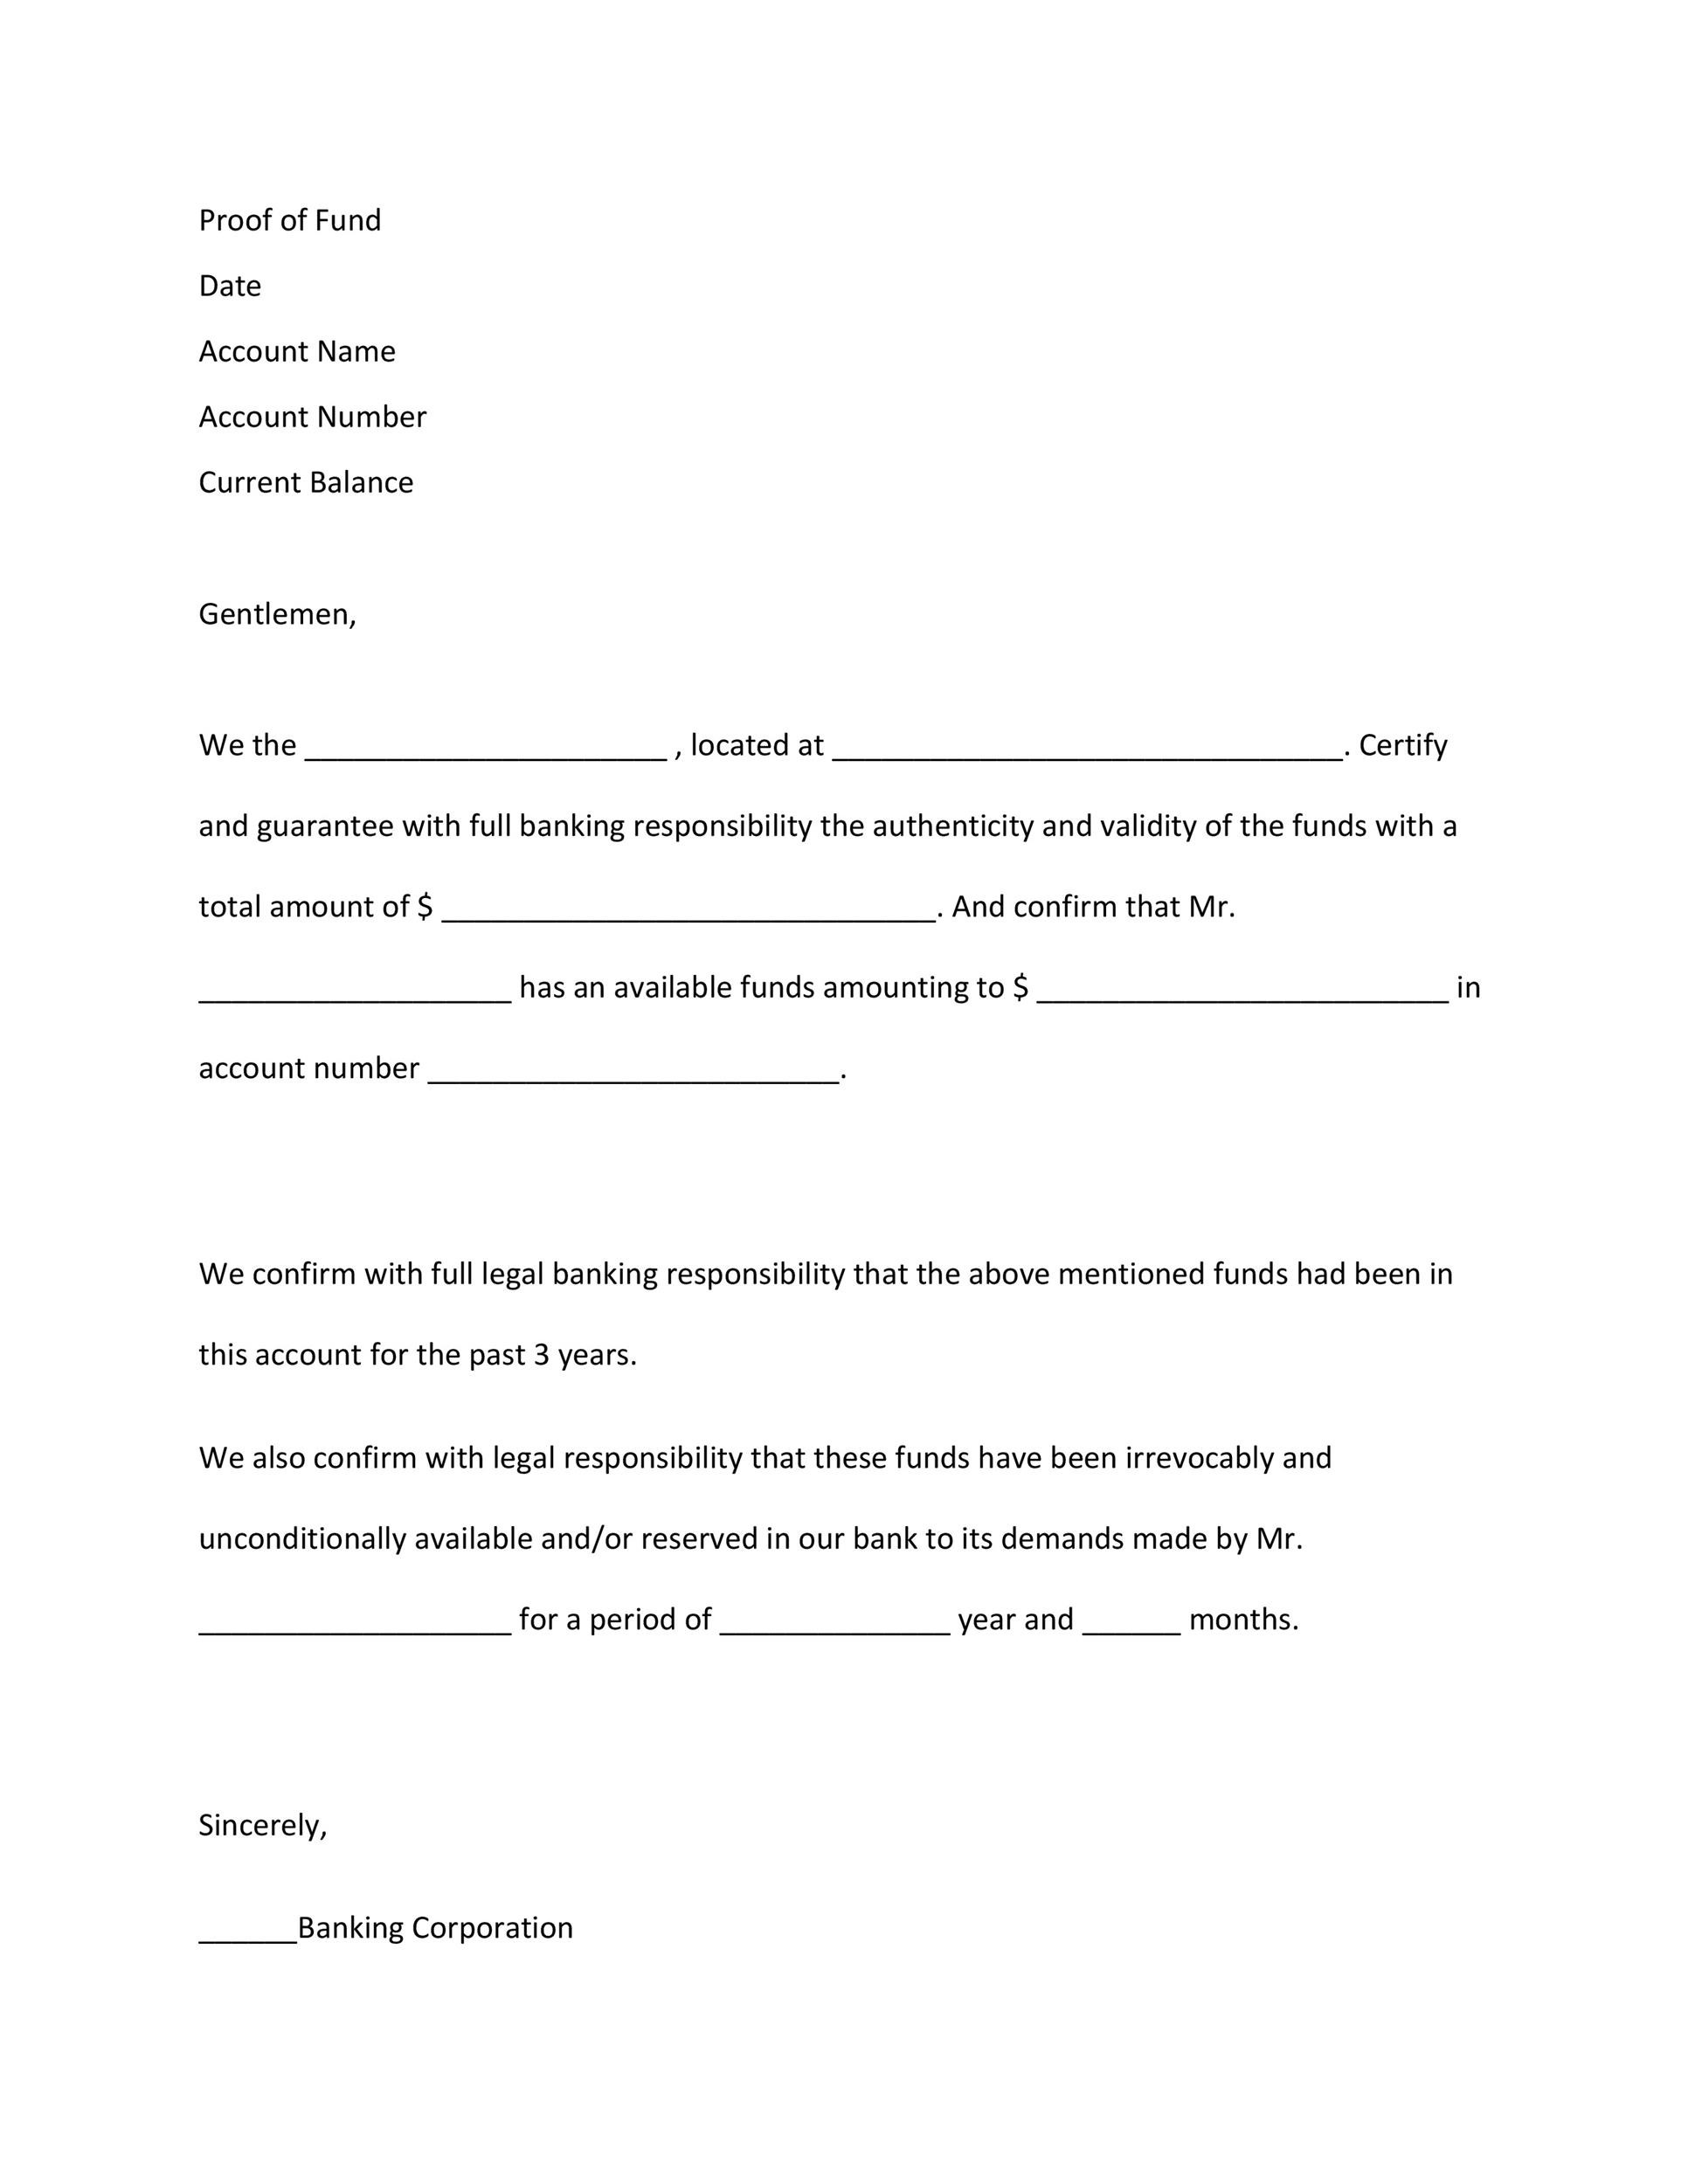 Free proof of funds letter template 15